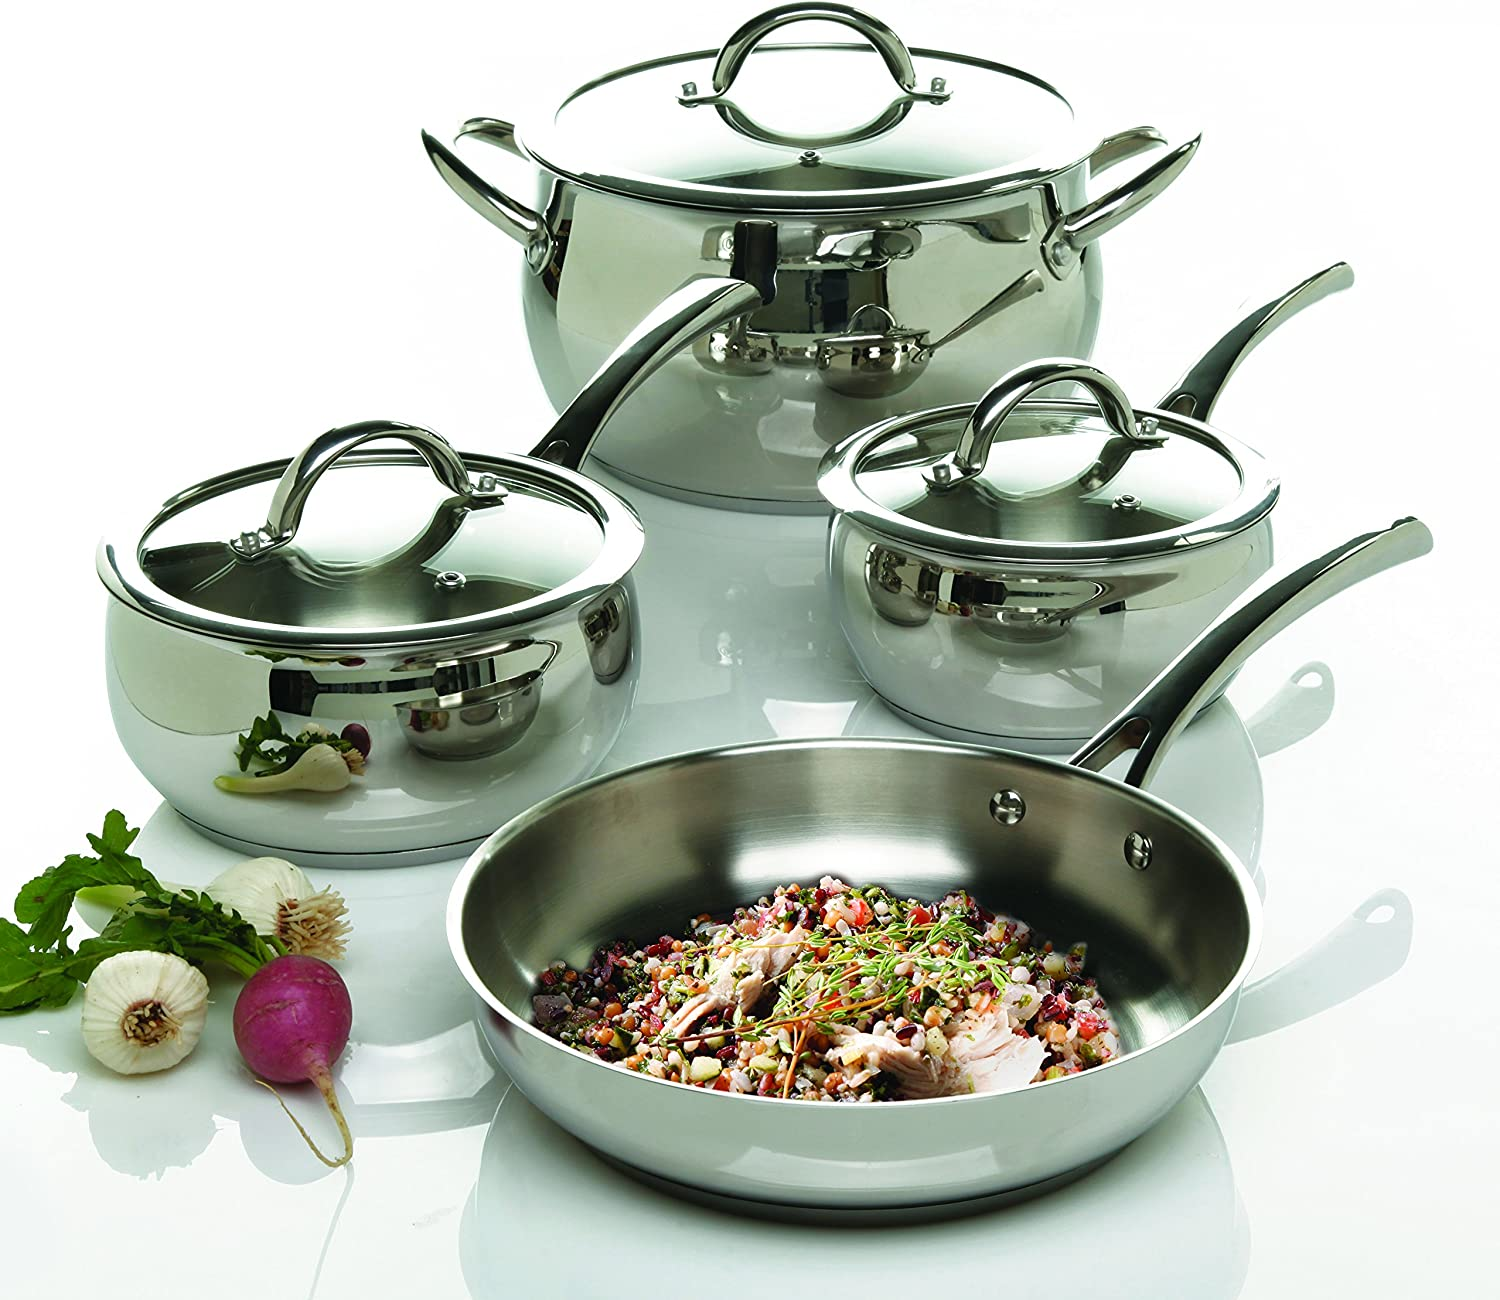 Silver Oster Cuisine 89464.01 Derrick 9.5 Inch Stainless Steel Frying Pan